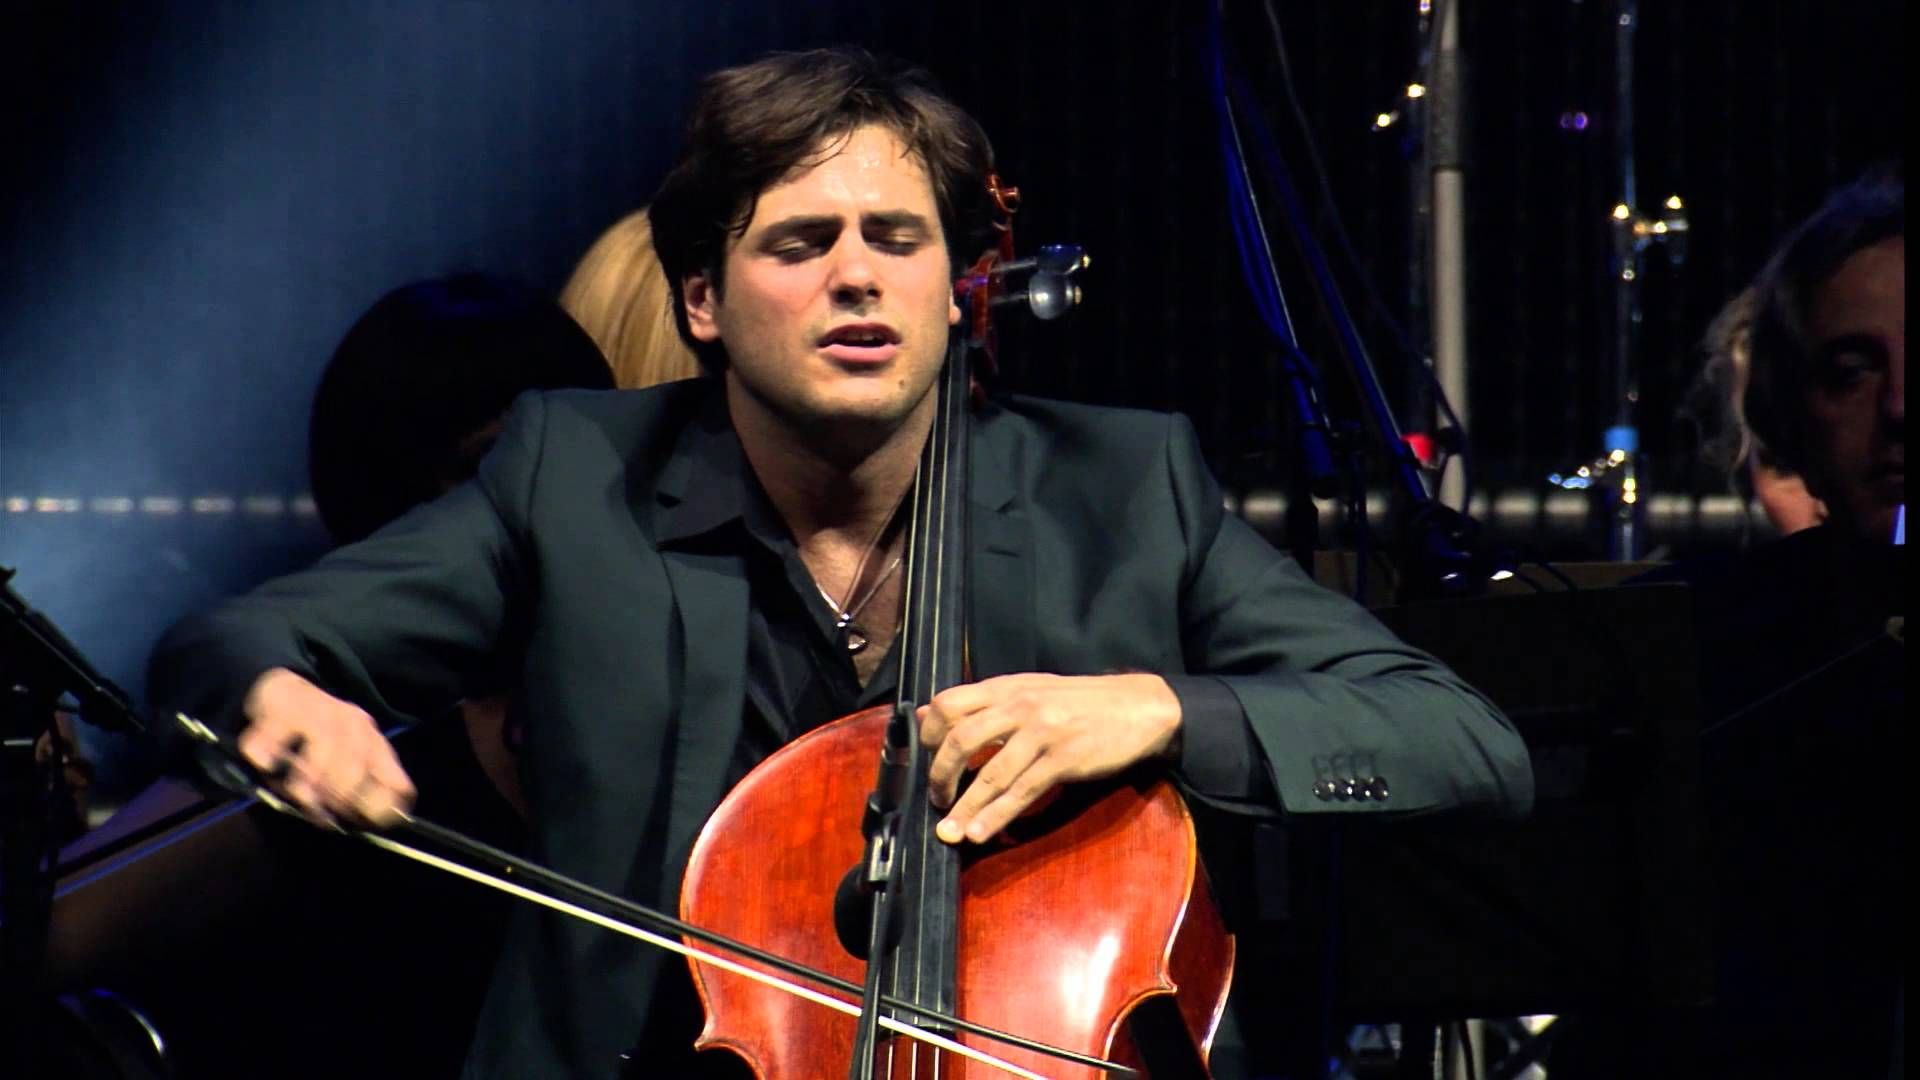 Stjepan Hauser Oblivion Piazzolla I Kind Of Life I Lived Worked Enjoyed Not Only In Segments Of Music Some Classical Music Composers Music Love Cello Music